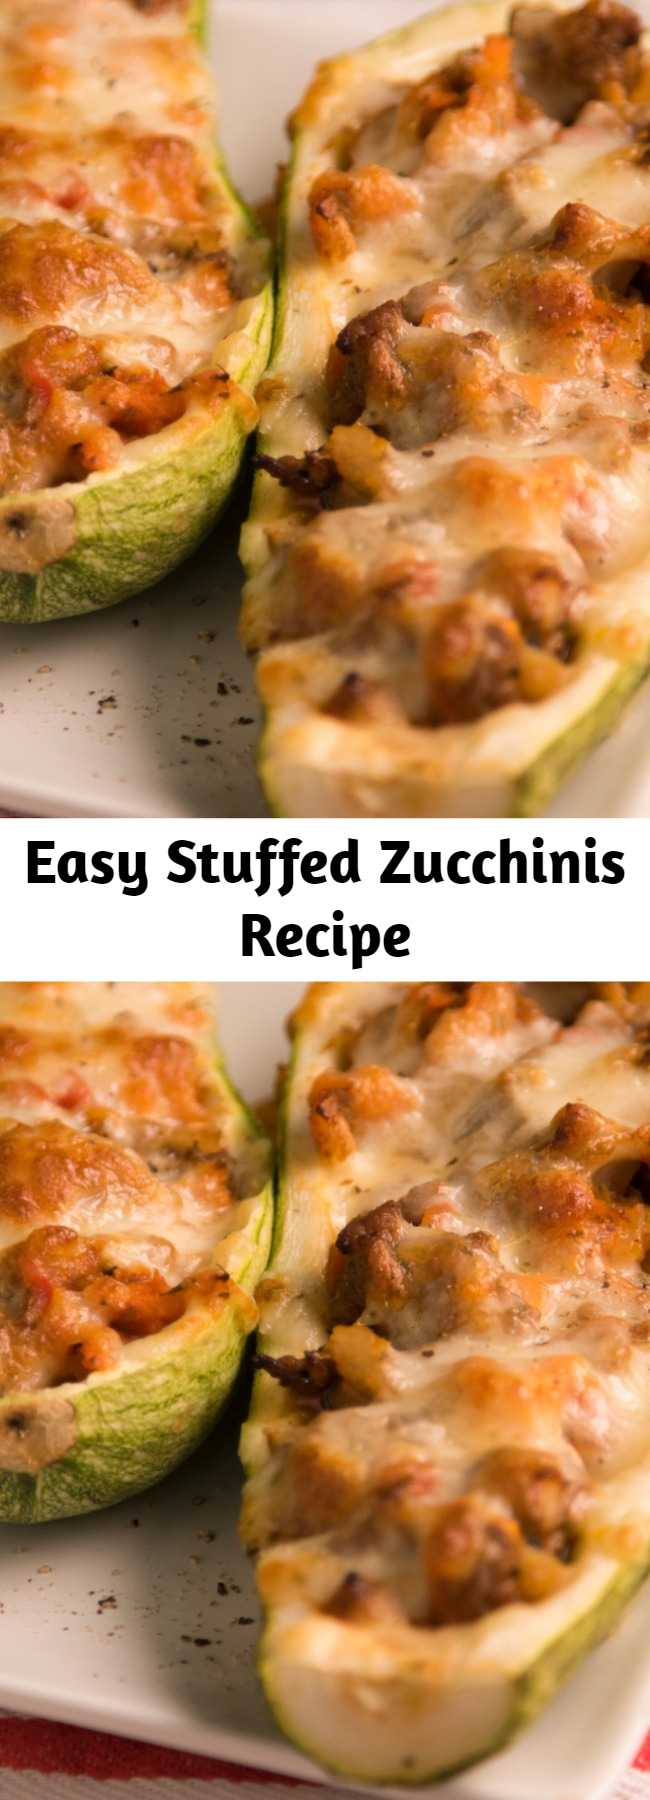 Easy Stuffed Zucchinis Recipe - This is exactly how you're going to feel after you eat this delicious meal. No regrets, though.